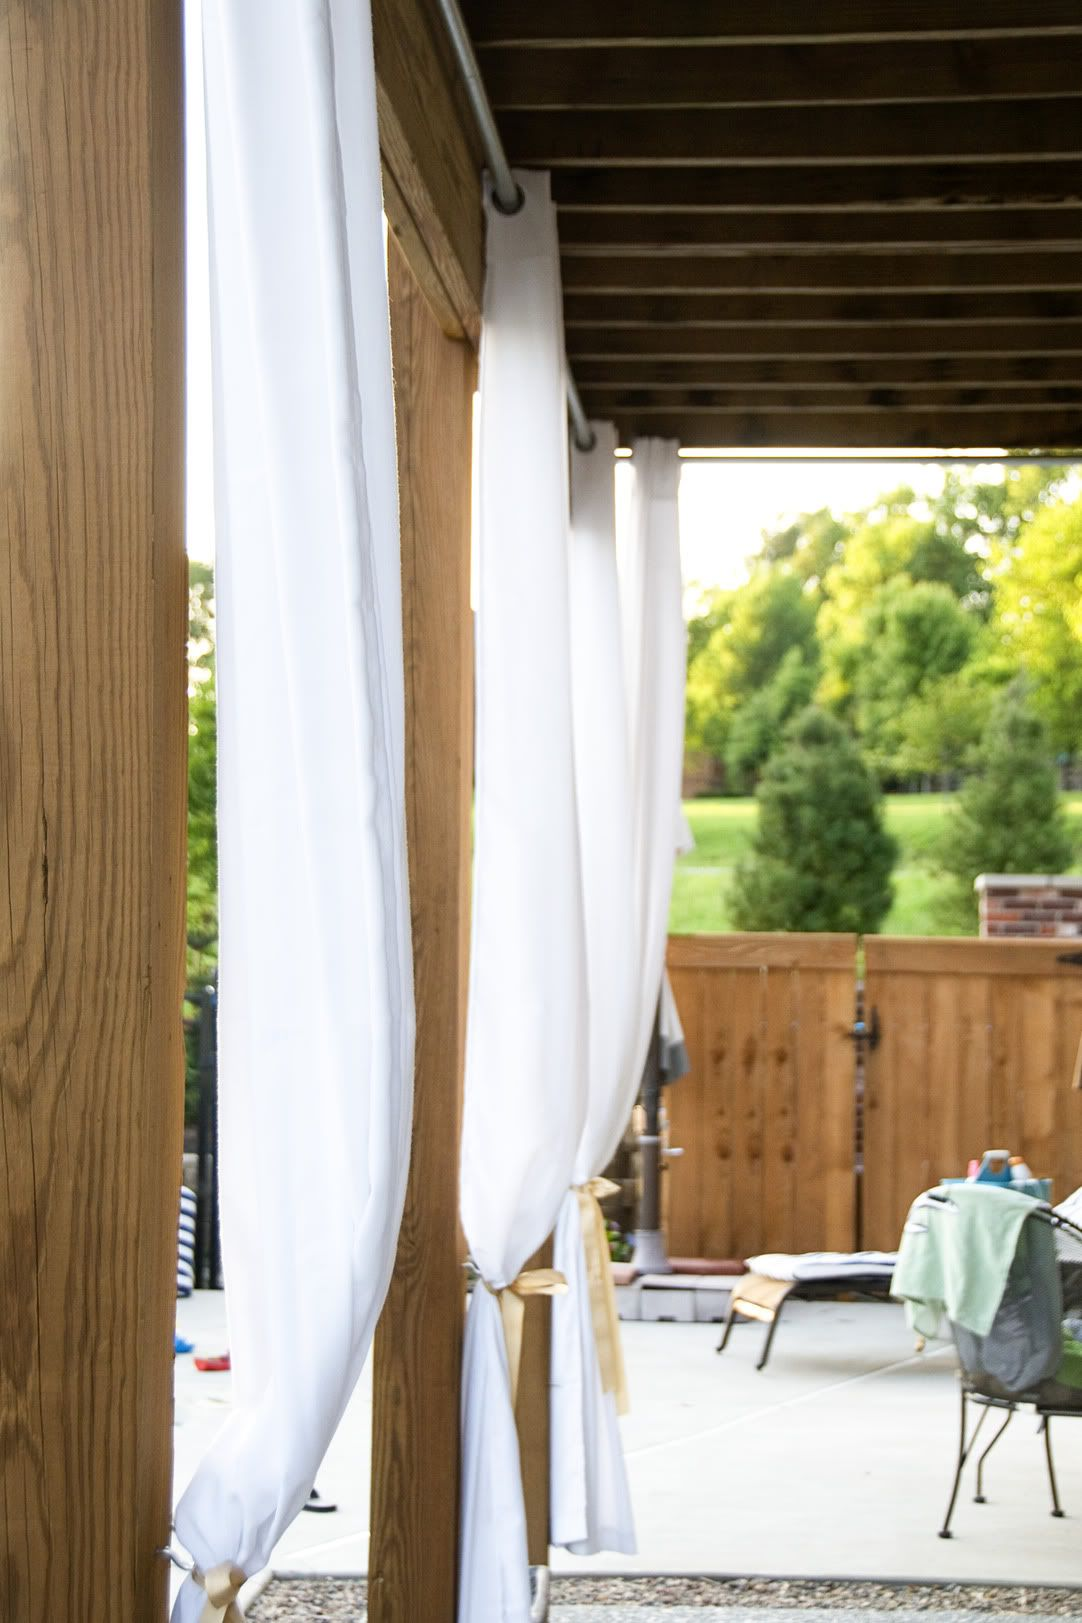 How To Hang Outdoor Curtains Diy Outdoor Curtain Rods The Polka Dot Chair Outdoor Drapes Outdoor Curtains Diy Patio